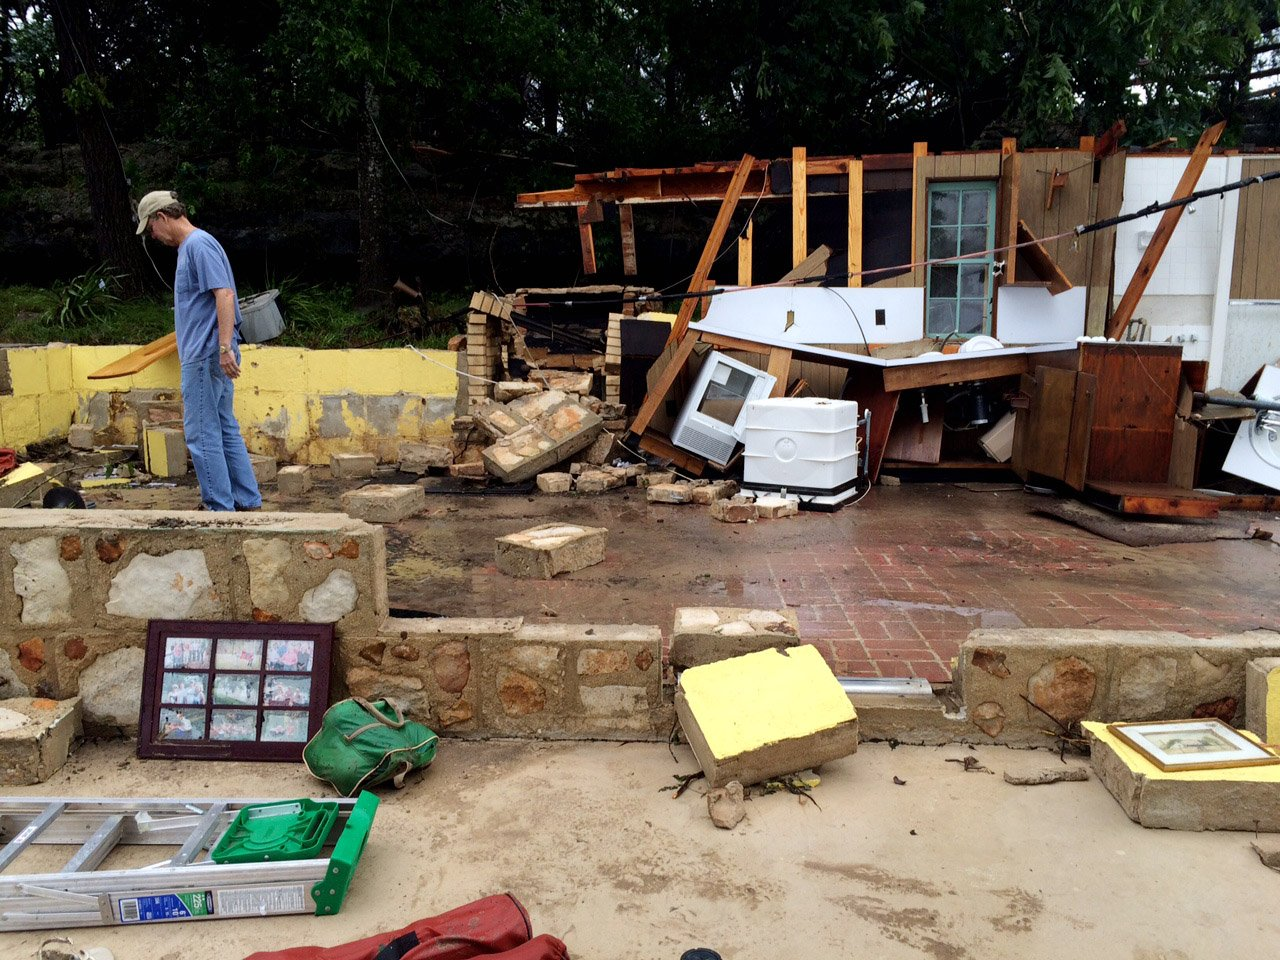 Gordon Welch surveys damage to the house his family has owned since 1964 along River Road next to the Blanco River in Wimberley, Texas, May 24, 2015.